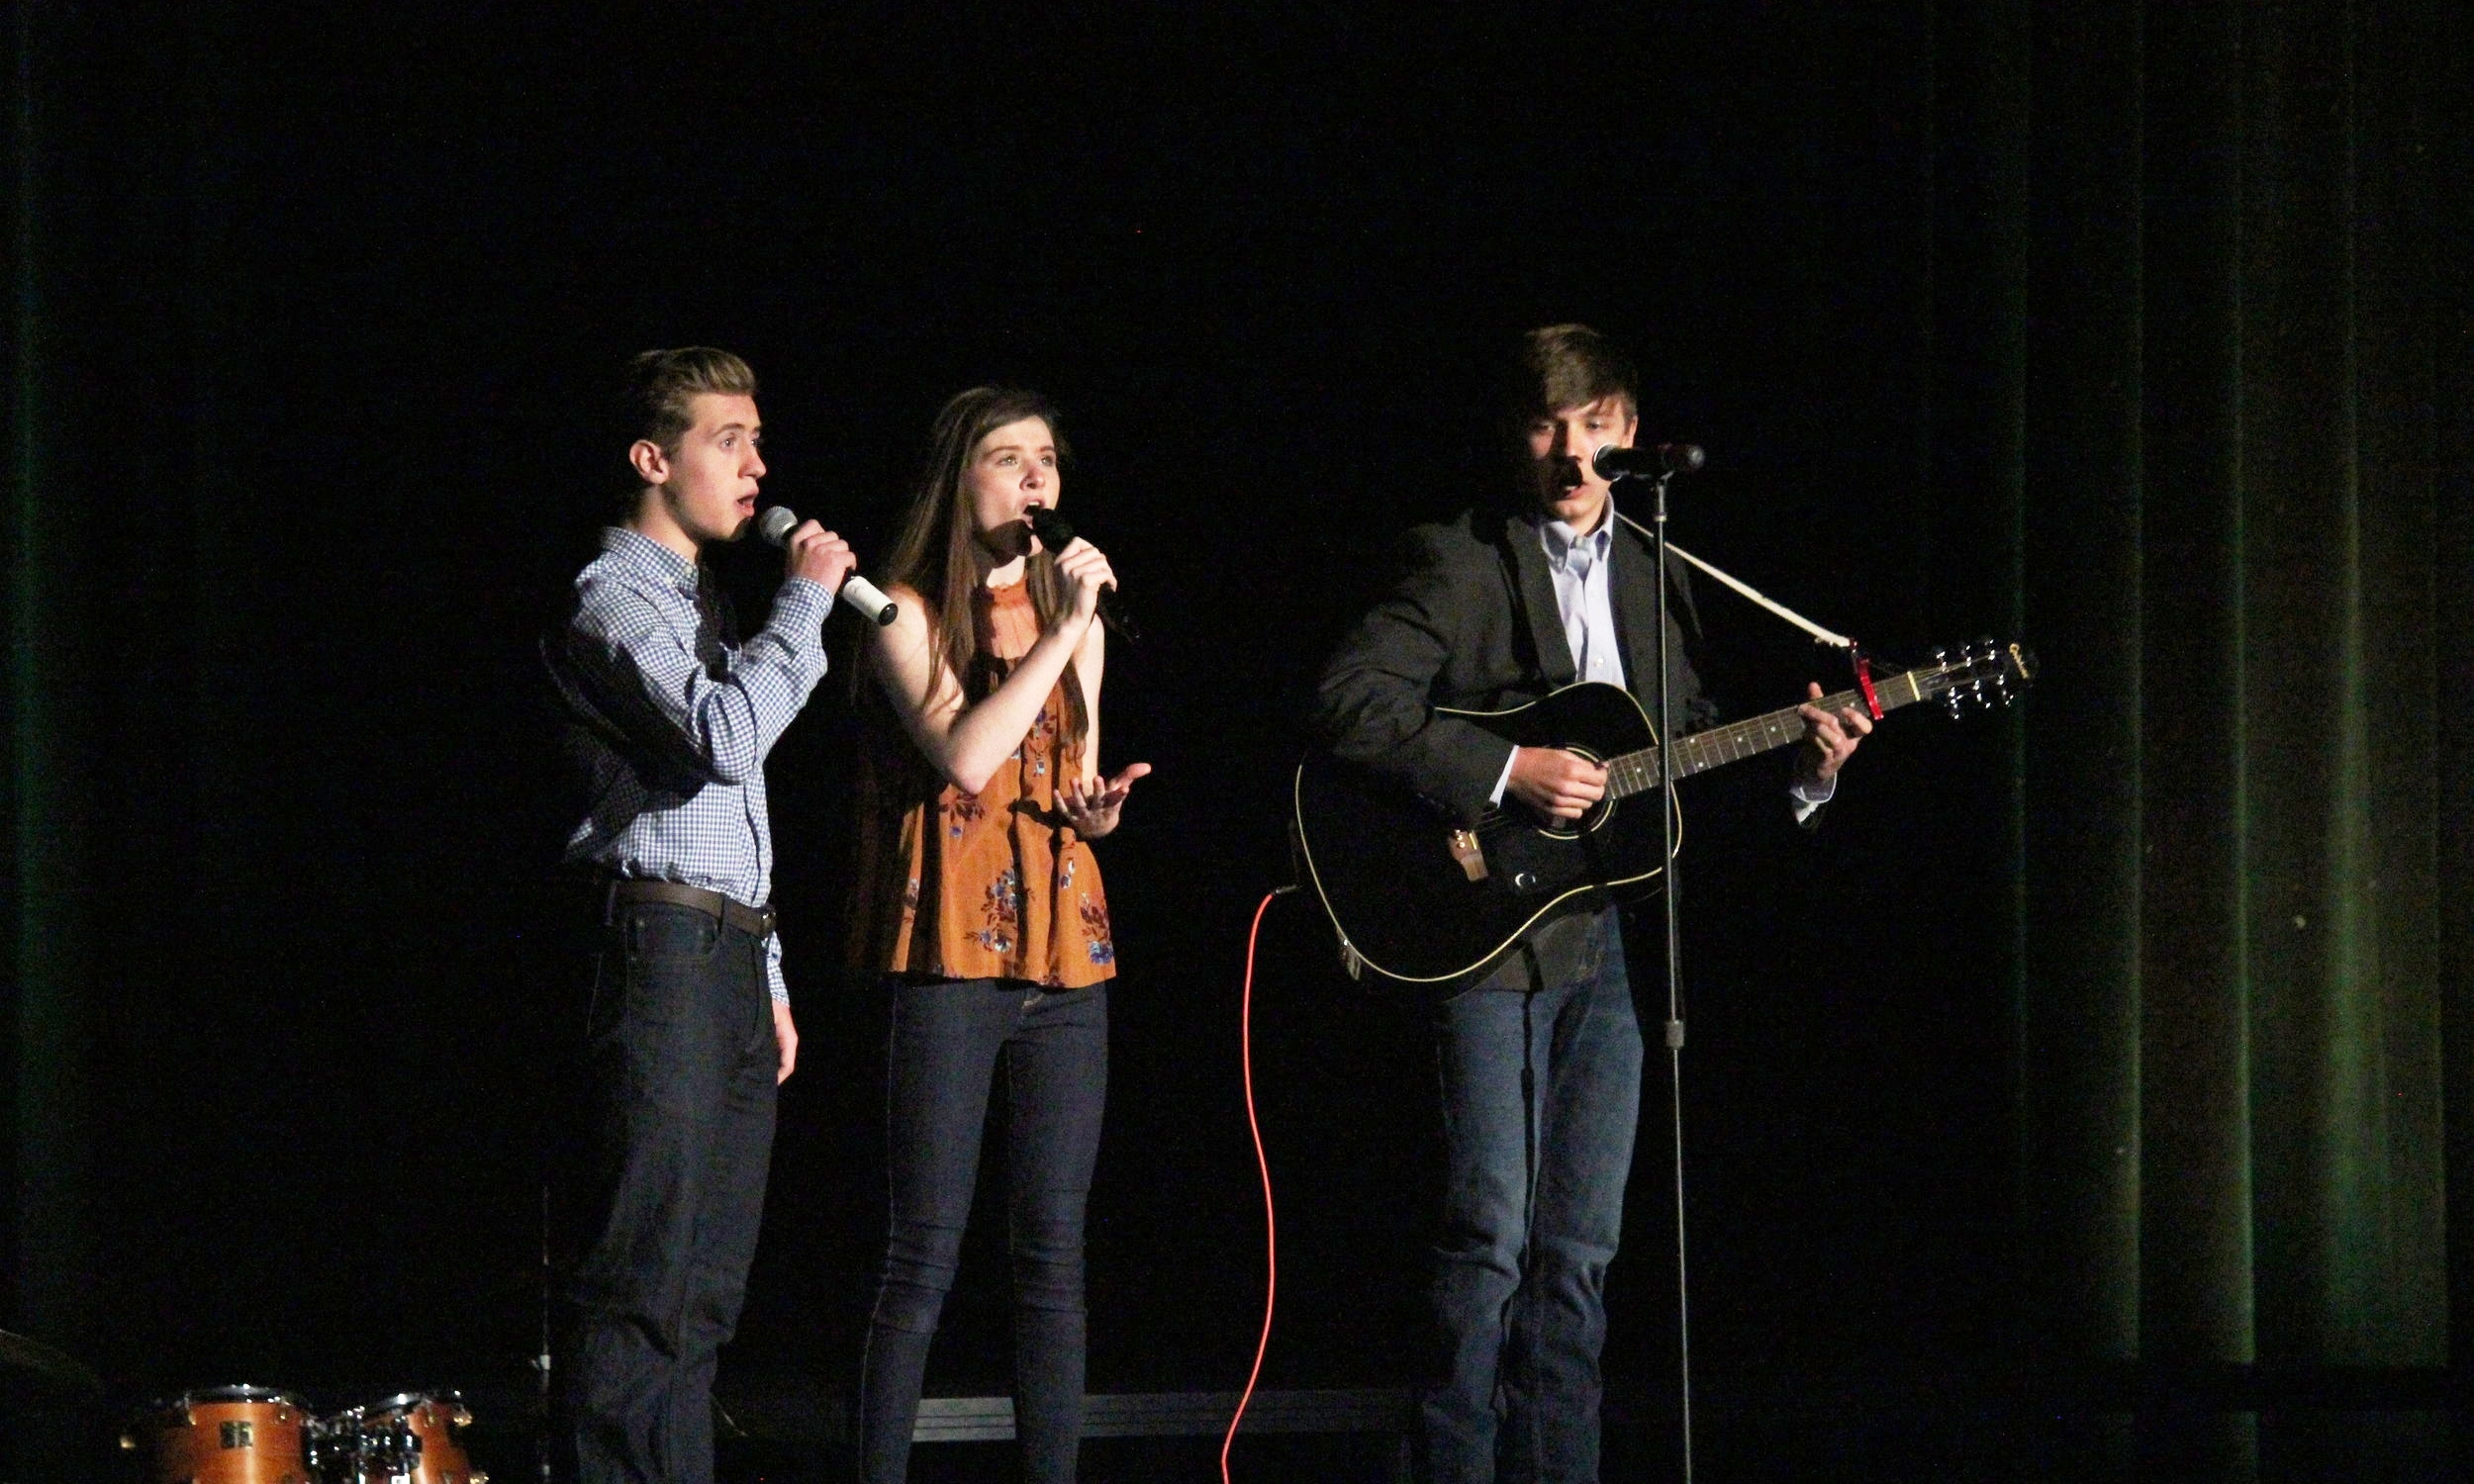 Oak Mountain hosts an annual talent show on the Friday of Homecoming Week for all students to attend. There are so many great acts, from singing, dancing, one-act plays, to even stand up comedy. This is one of the favorite traditions of every student.